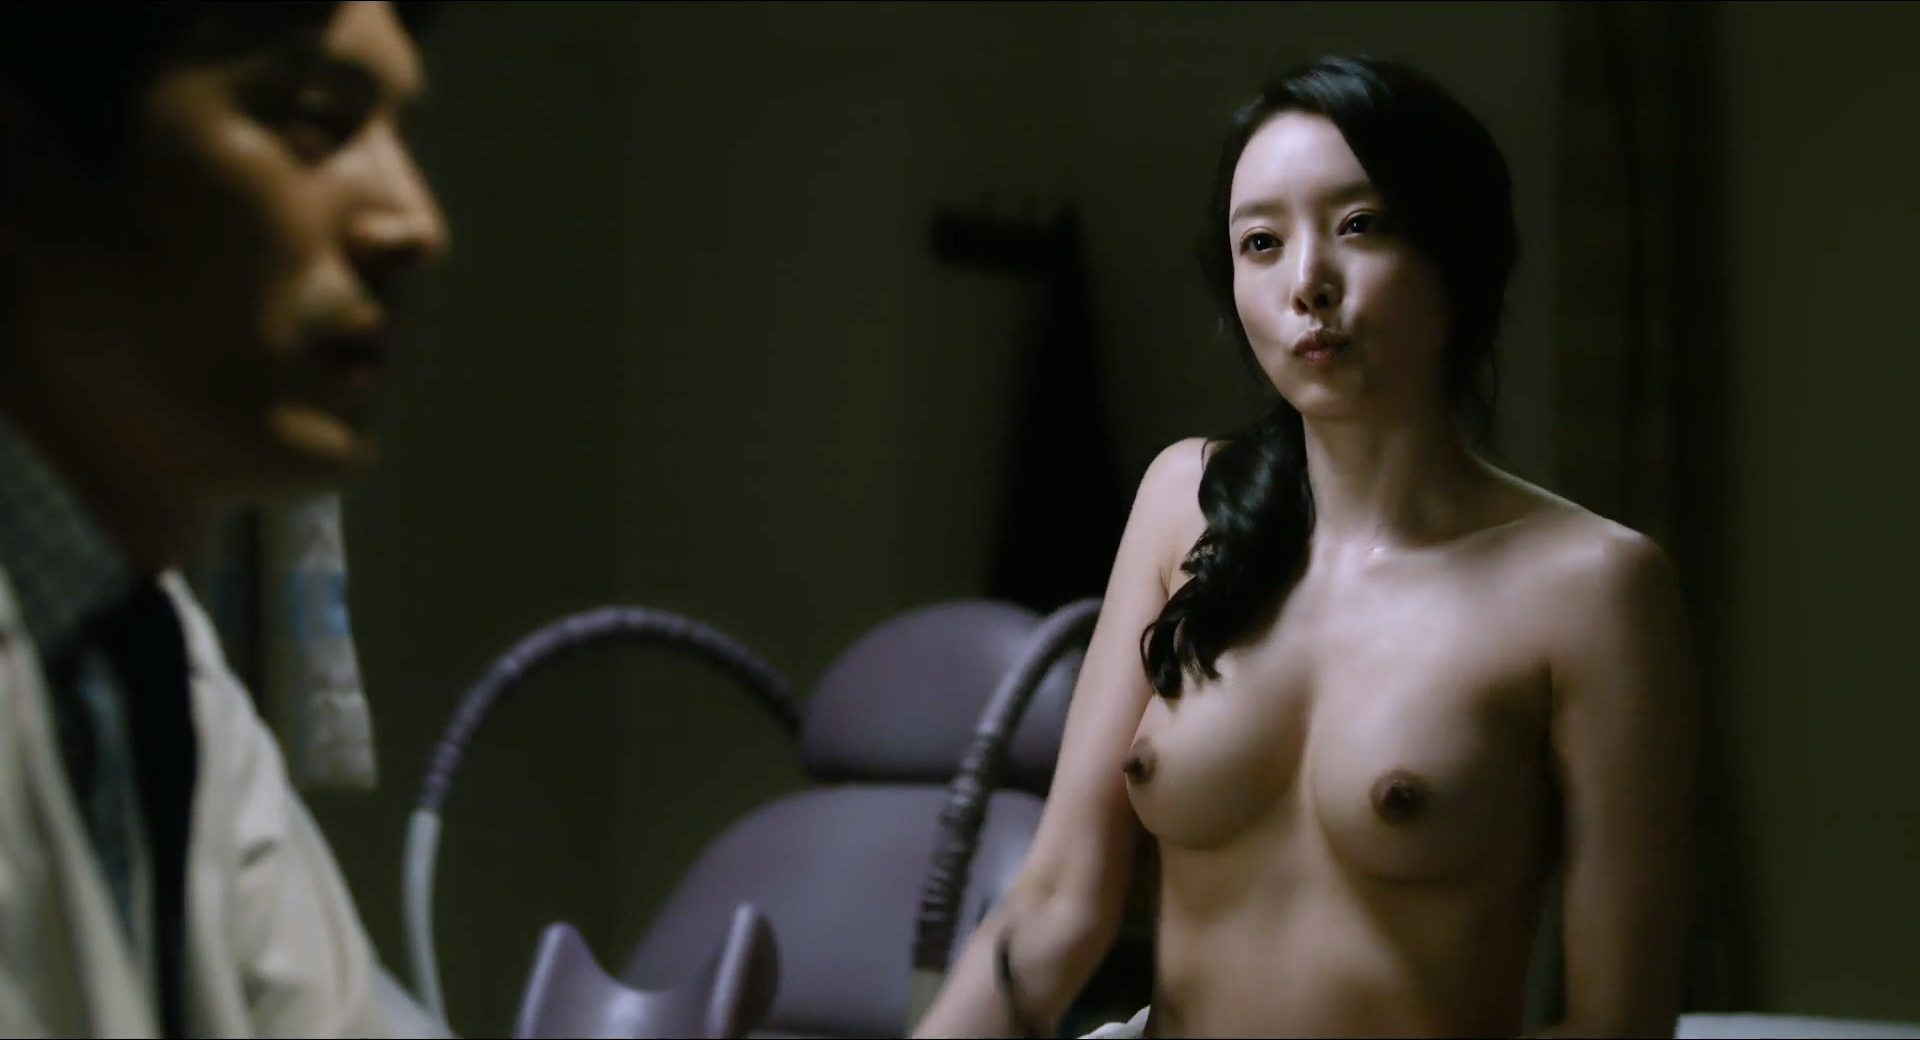 winter-korean-actor-naked-nude-valentino-nude-snakes